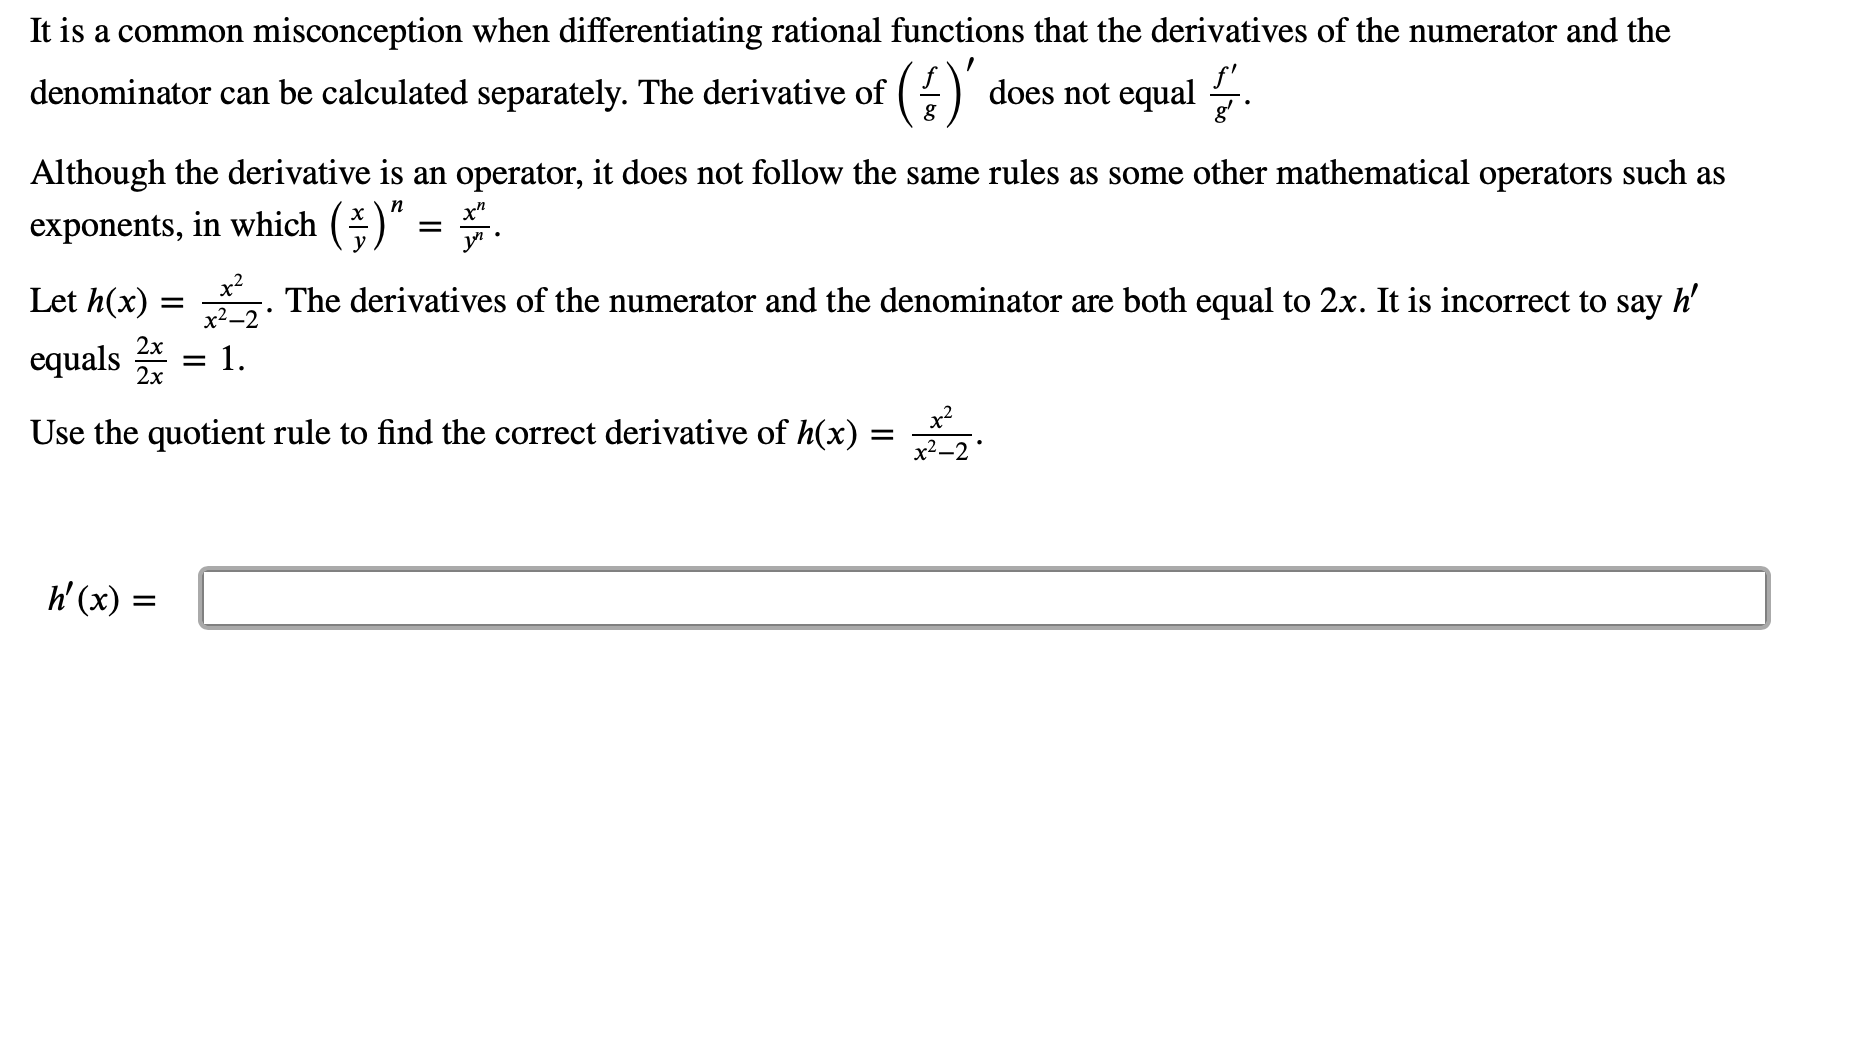 misconception when differentiating rational functions that the derivatives of the numerator and the It is a common () does not equal denominator can be calculated separately. The derivative of Although the derivative is an operator, it does not follow the same rules as some other mathematical operators such as n exponents, in which y х х? Let h(x) h' The derivatives of the numerator and the denominator are both equal to 2x. It is incorrect to say 2x equals - 1 2х x2 Use the quotient rule to find the correct derivative of h(x) х2—2 h(x)=